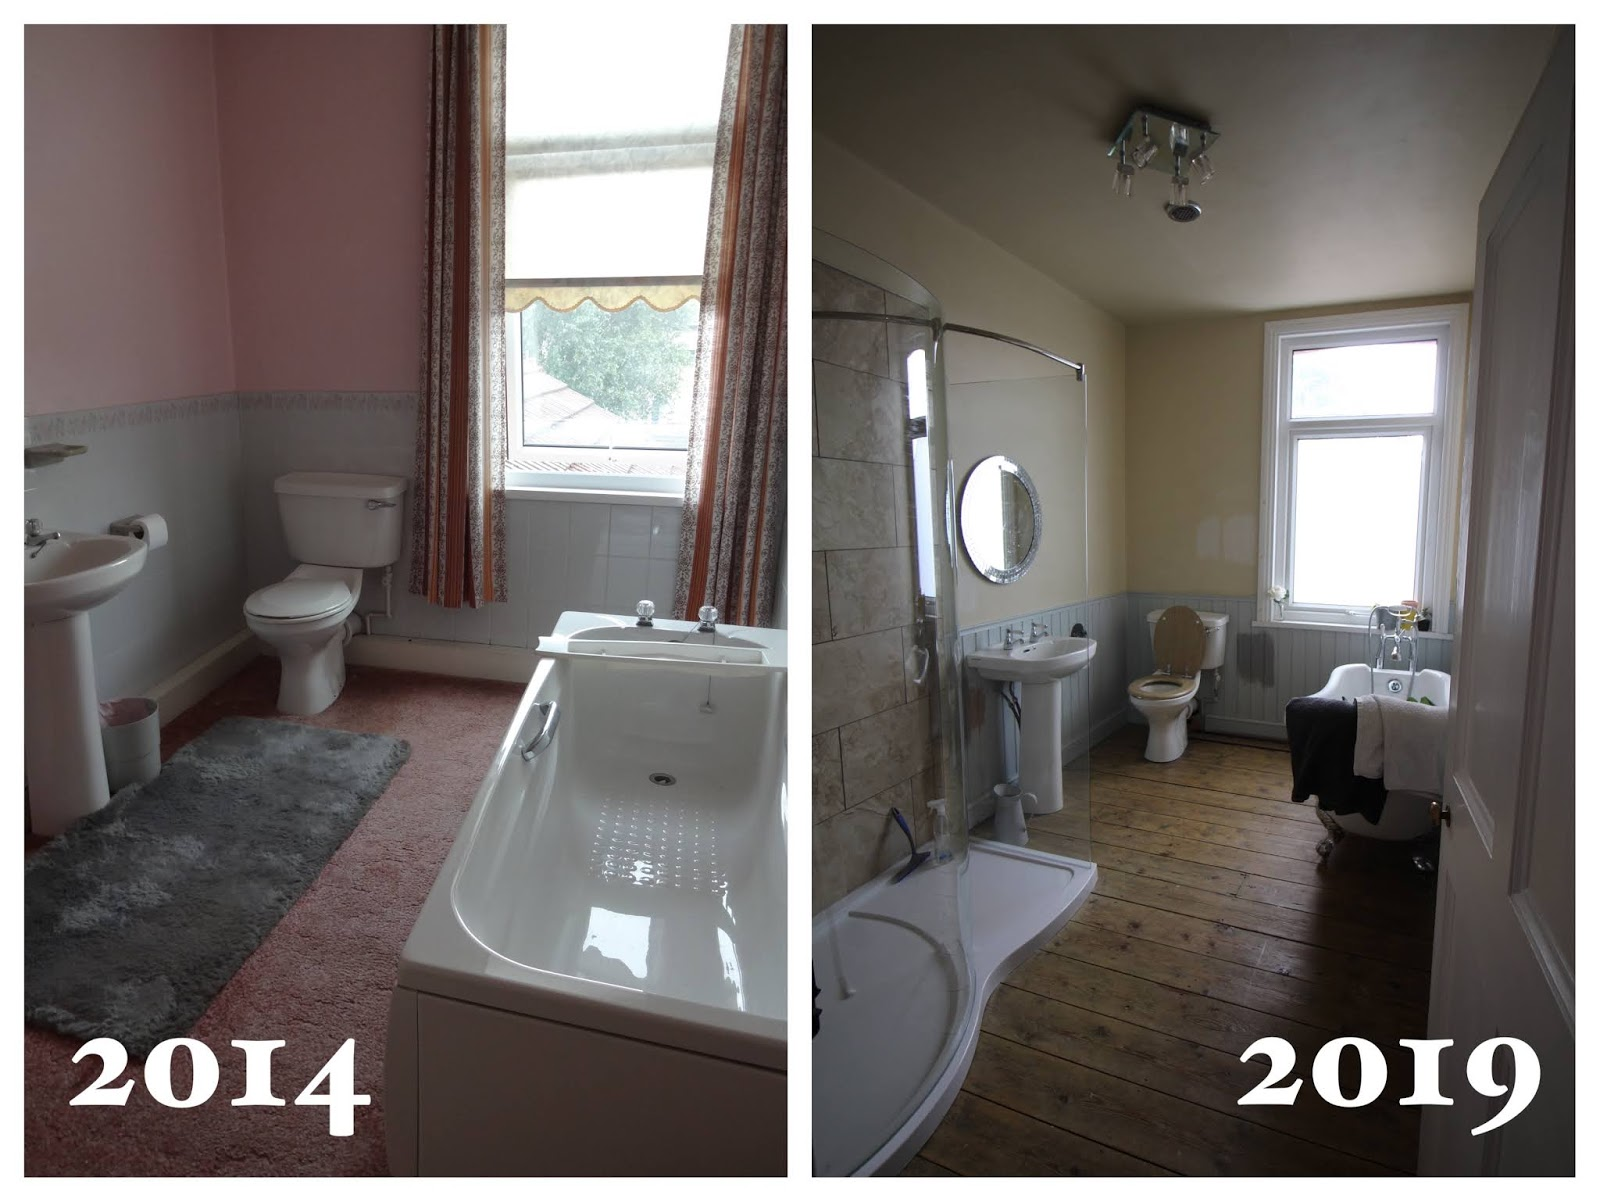 bathroom renovation before and after 5 years